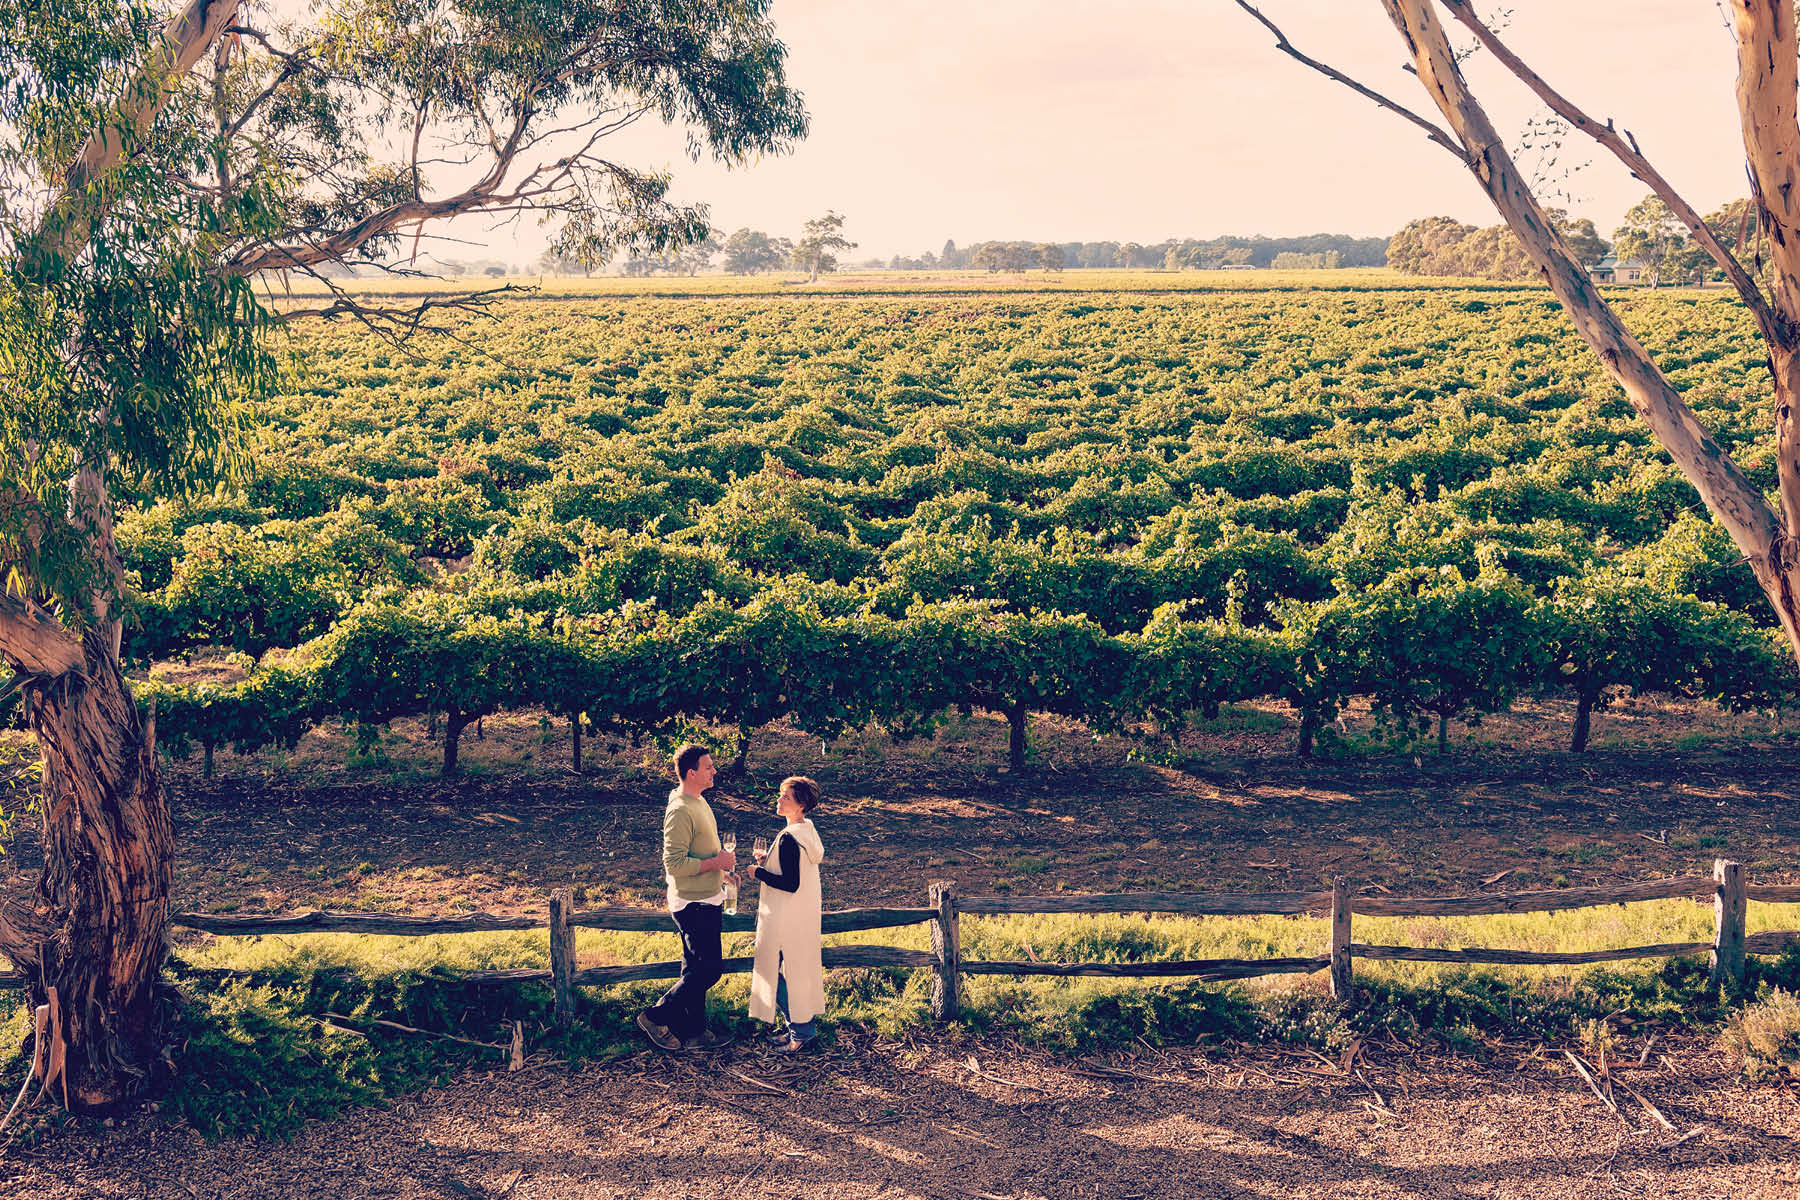 Langhorne Creek Grape and Wine Association